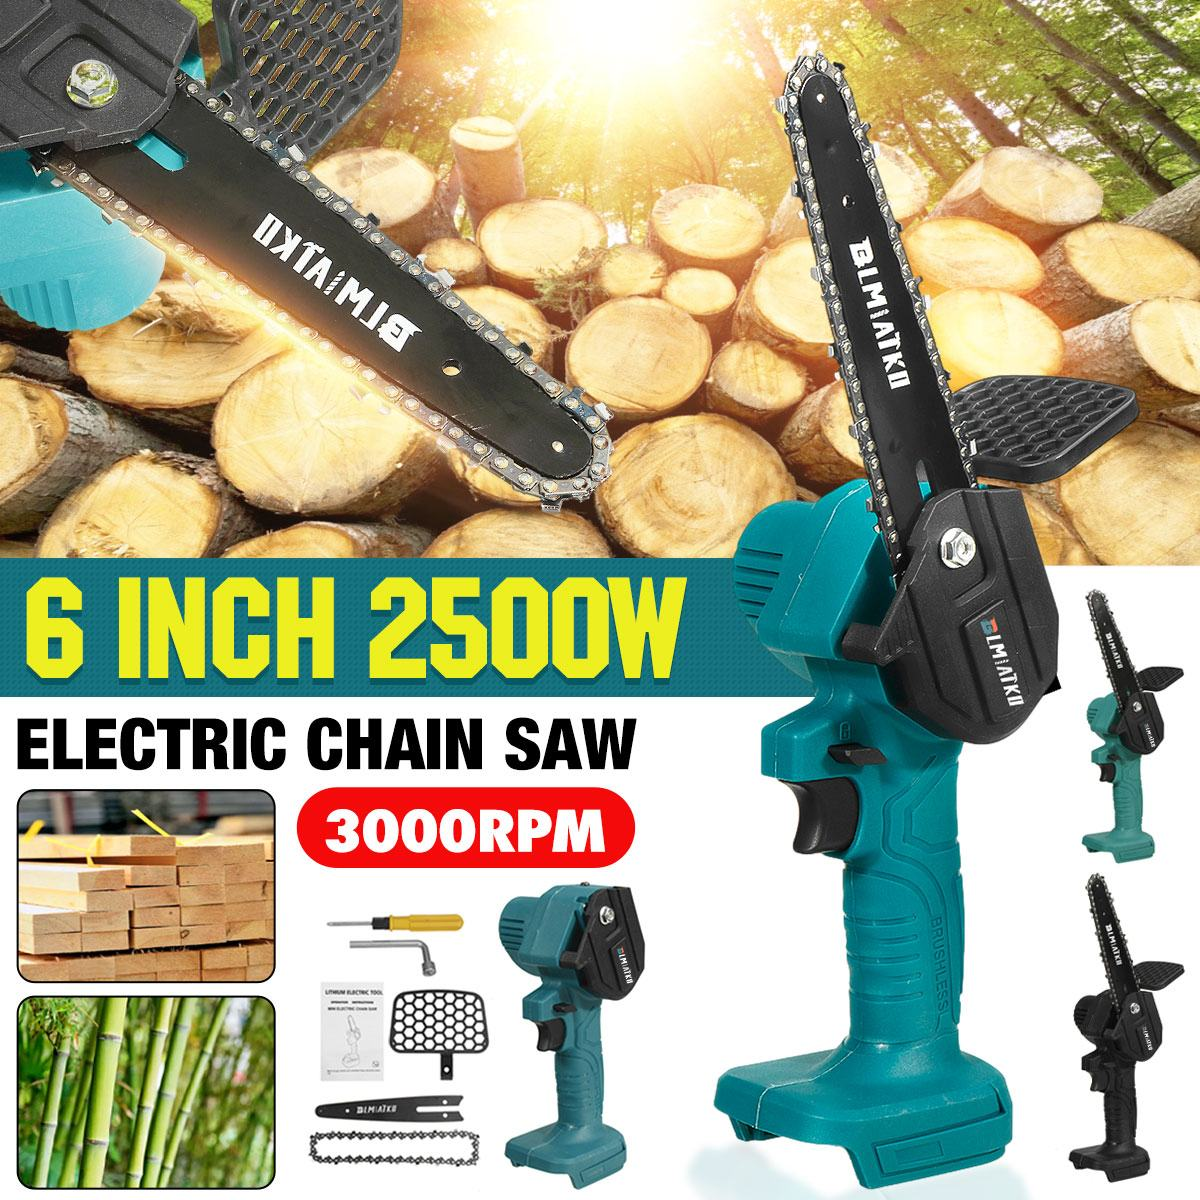 6 inch 1200w mini electric chain saw with battery indicator 128vf 388vf rechargeable woodworking tool for makita 18v battery BLMIATKO 18V 2500W 6 Inch Electric Chain Saw for Makita Battery Pruning ChainSaw Cordless Garden Logging Saw Woodworking Cutter